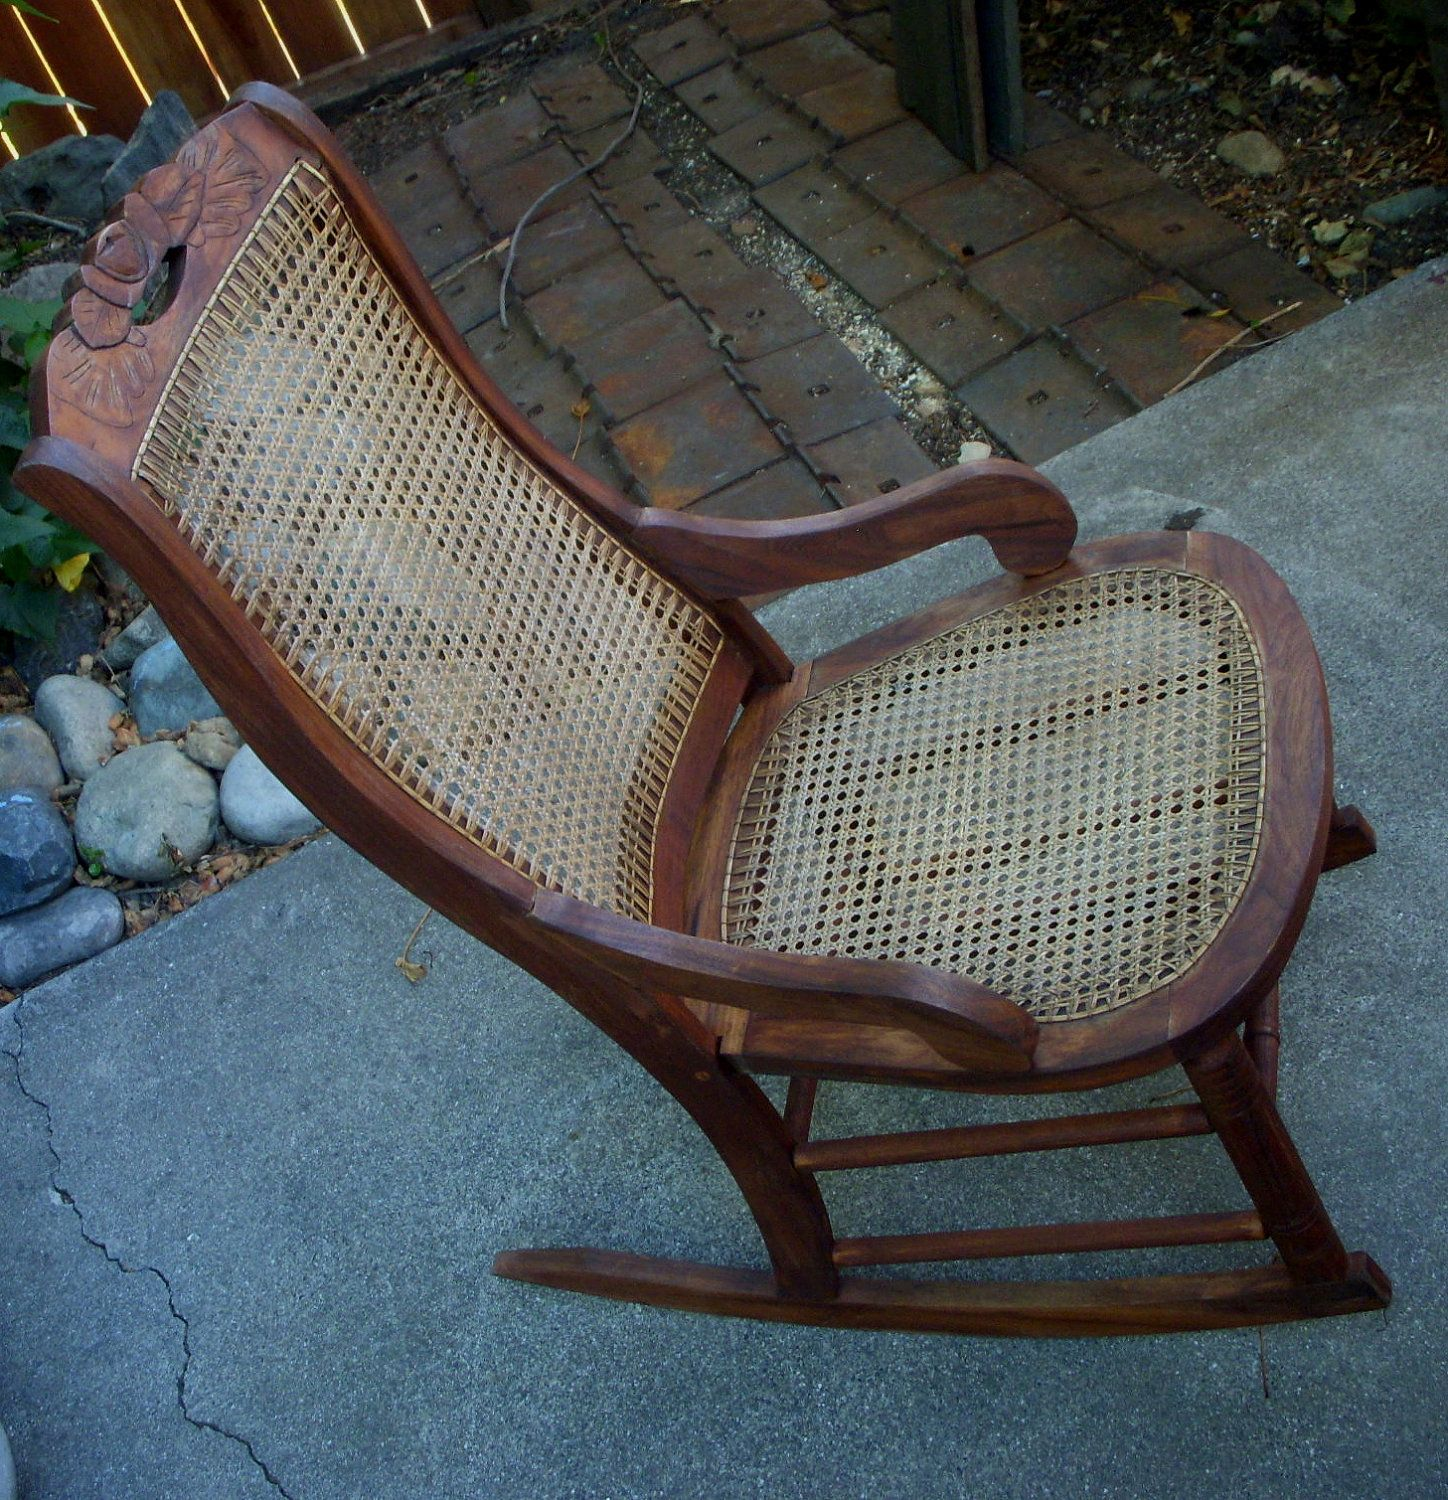 Antique Rocking Chair - Wood and Cane Seat - LOCAL pick up or delivery only. - Antique Rocking Chair - Wood And Cane Seat - LOCAL Pick Up Or